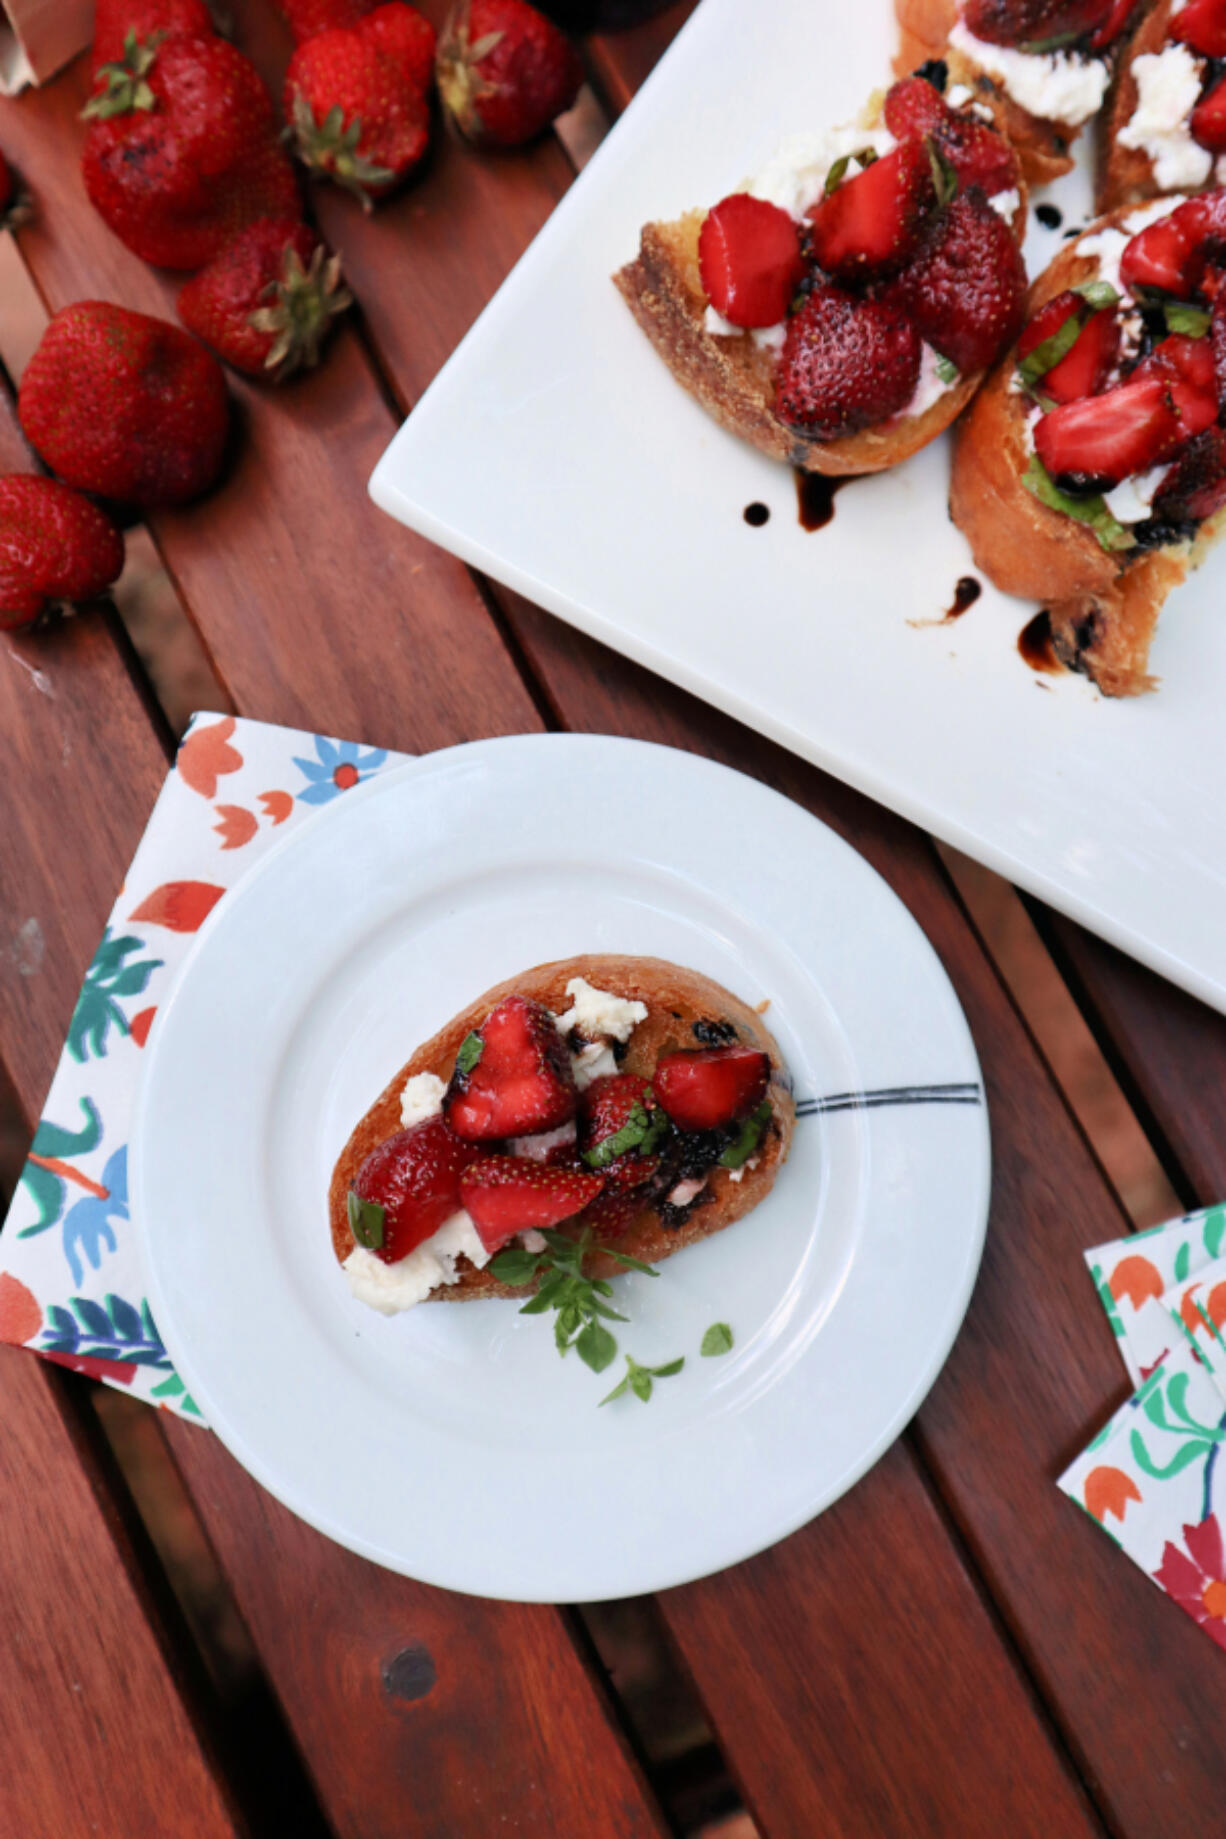 Fresh strawberries drizzled with a balsamic glaze make a great topping for bruschetta.